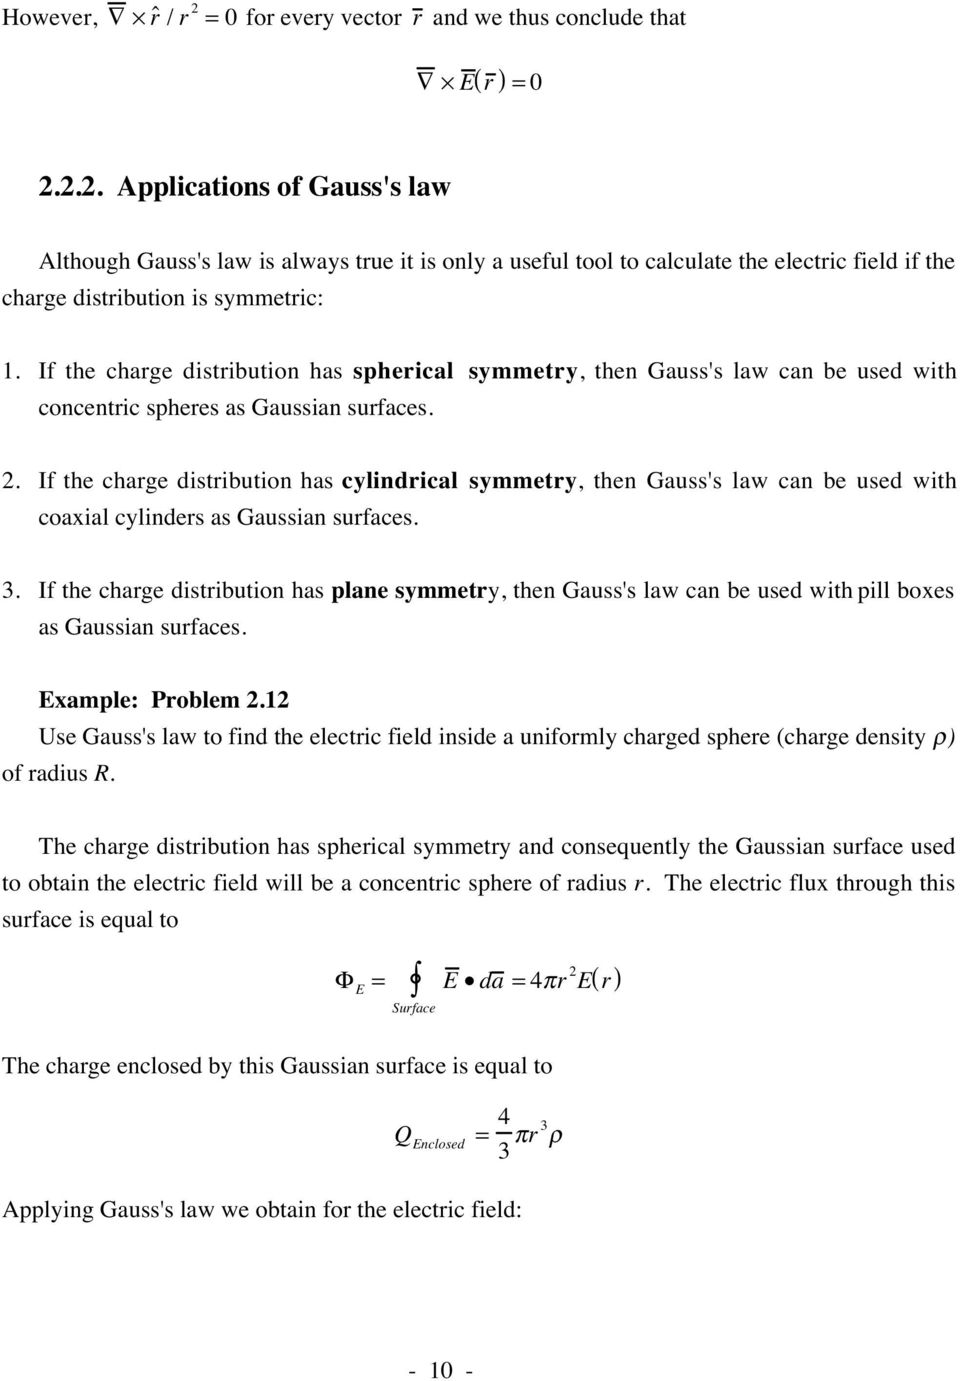 If the chage distibution has spheical symmety, then Gauss's law can be used with concentic sphees as Gaussian sufaces.